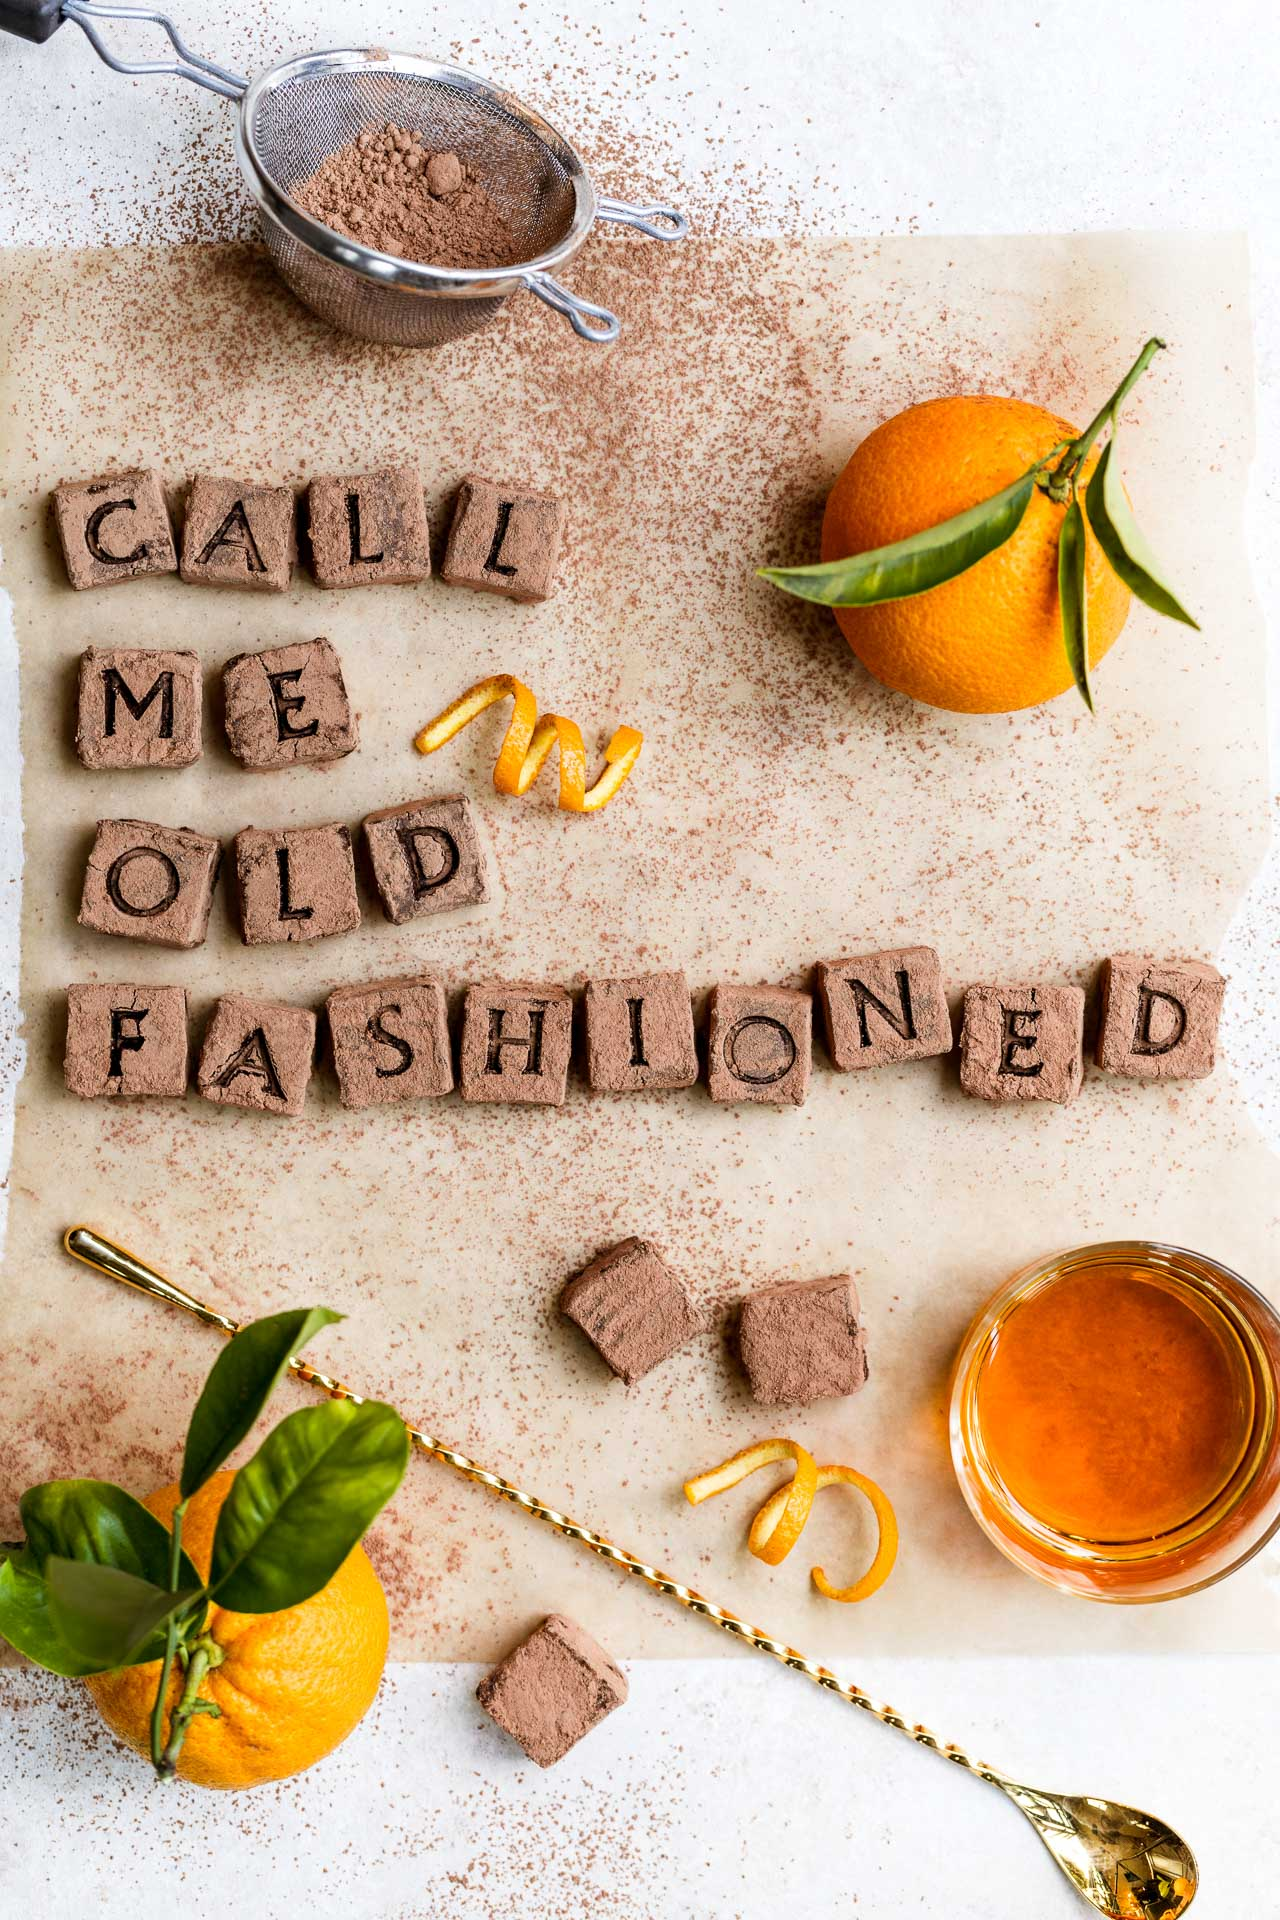 Old Fashioned Conversational Truffles | HonestlyYUM (honestlyyum.com)